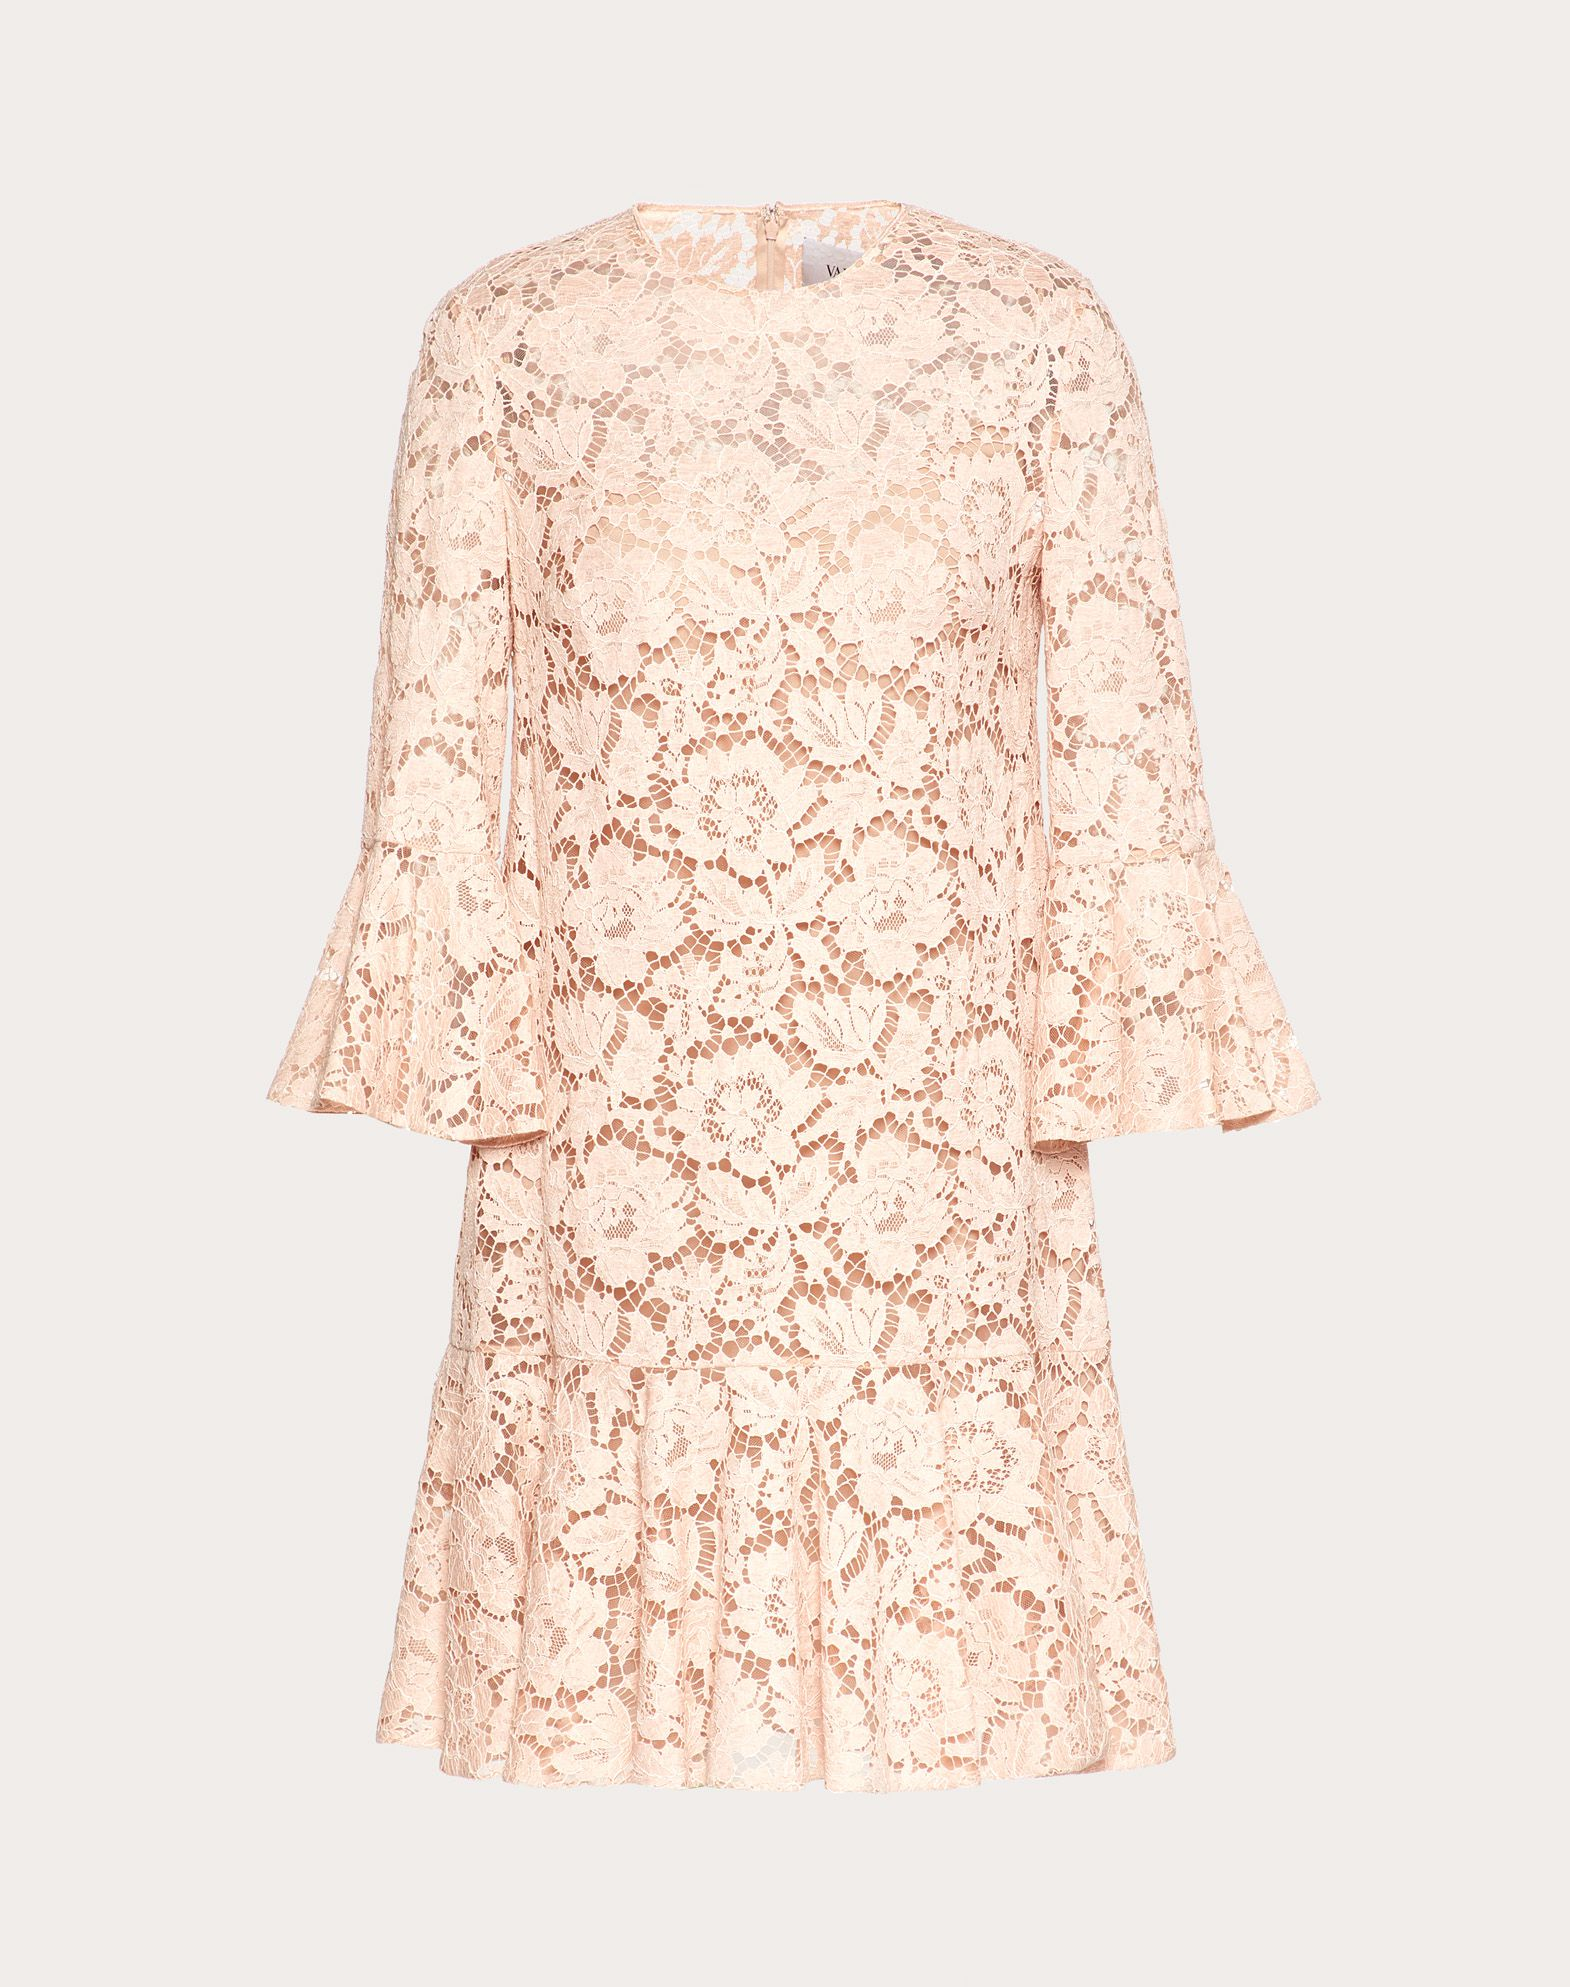 VALENTINO Lace Solid colour Round collar Rear zip closure Internal slip dress 3/4 length sleeves  34696092rj